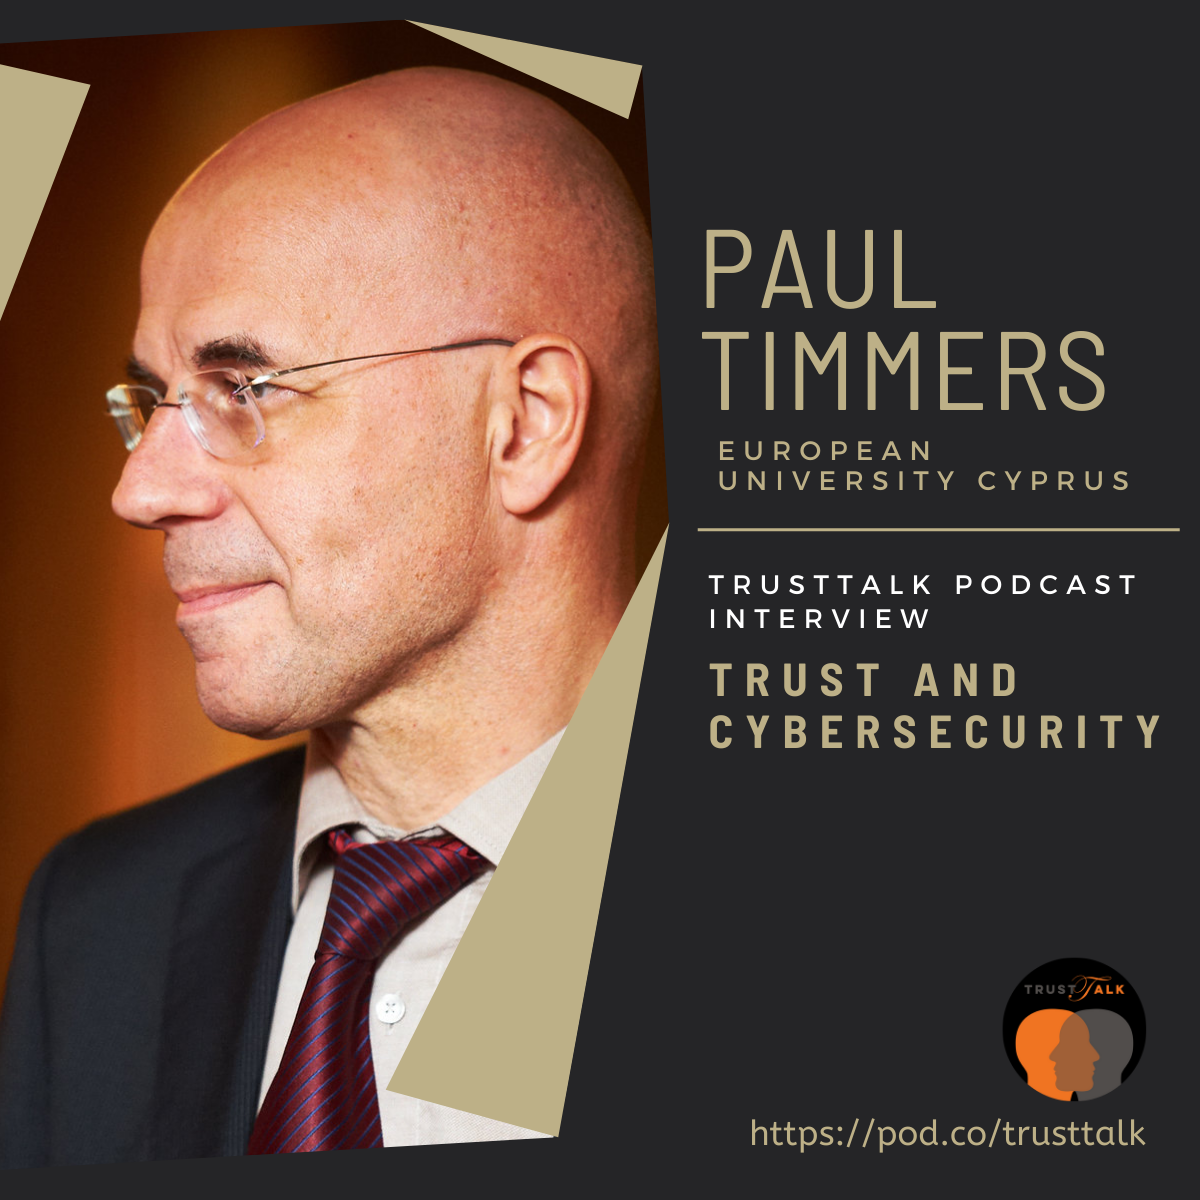 Trust and Cybersecurity